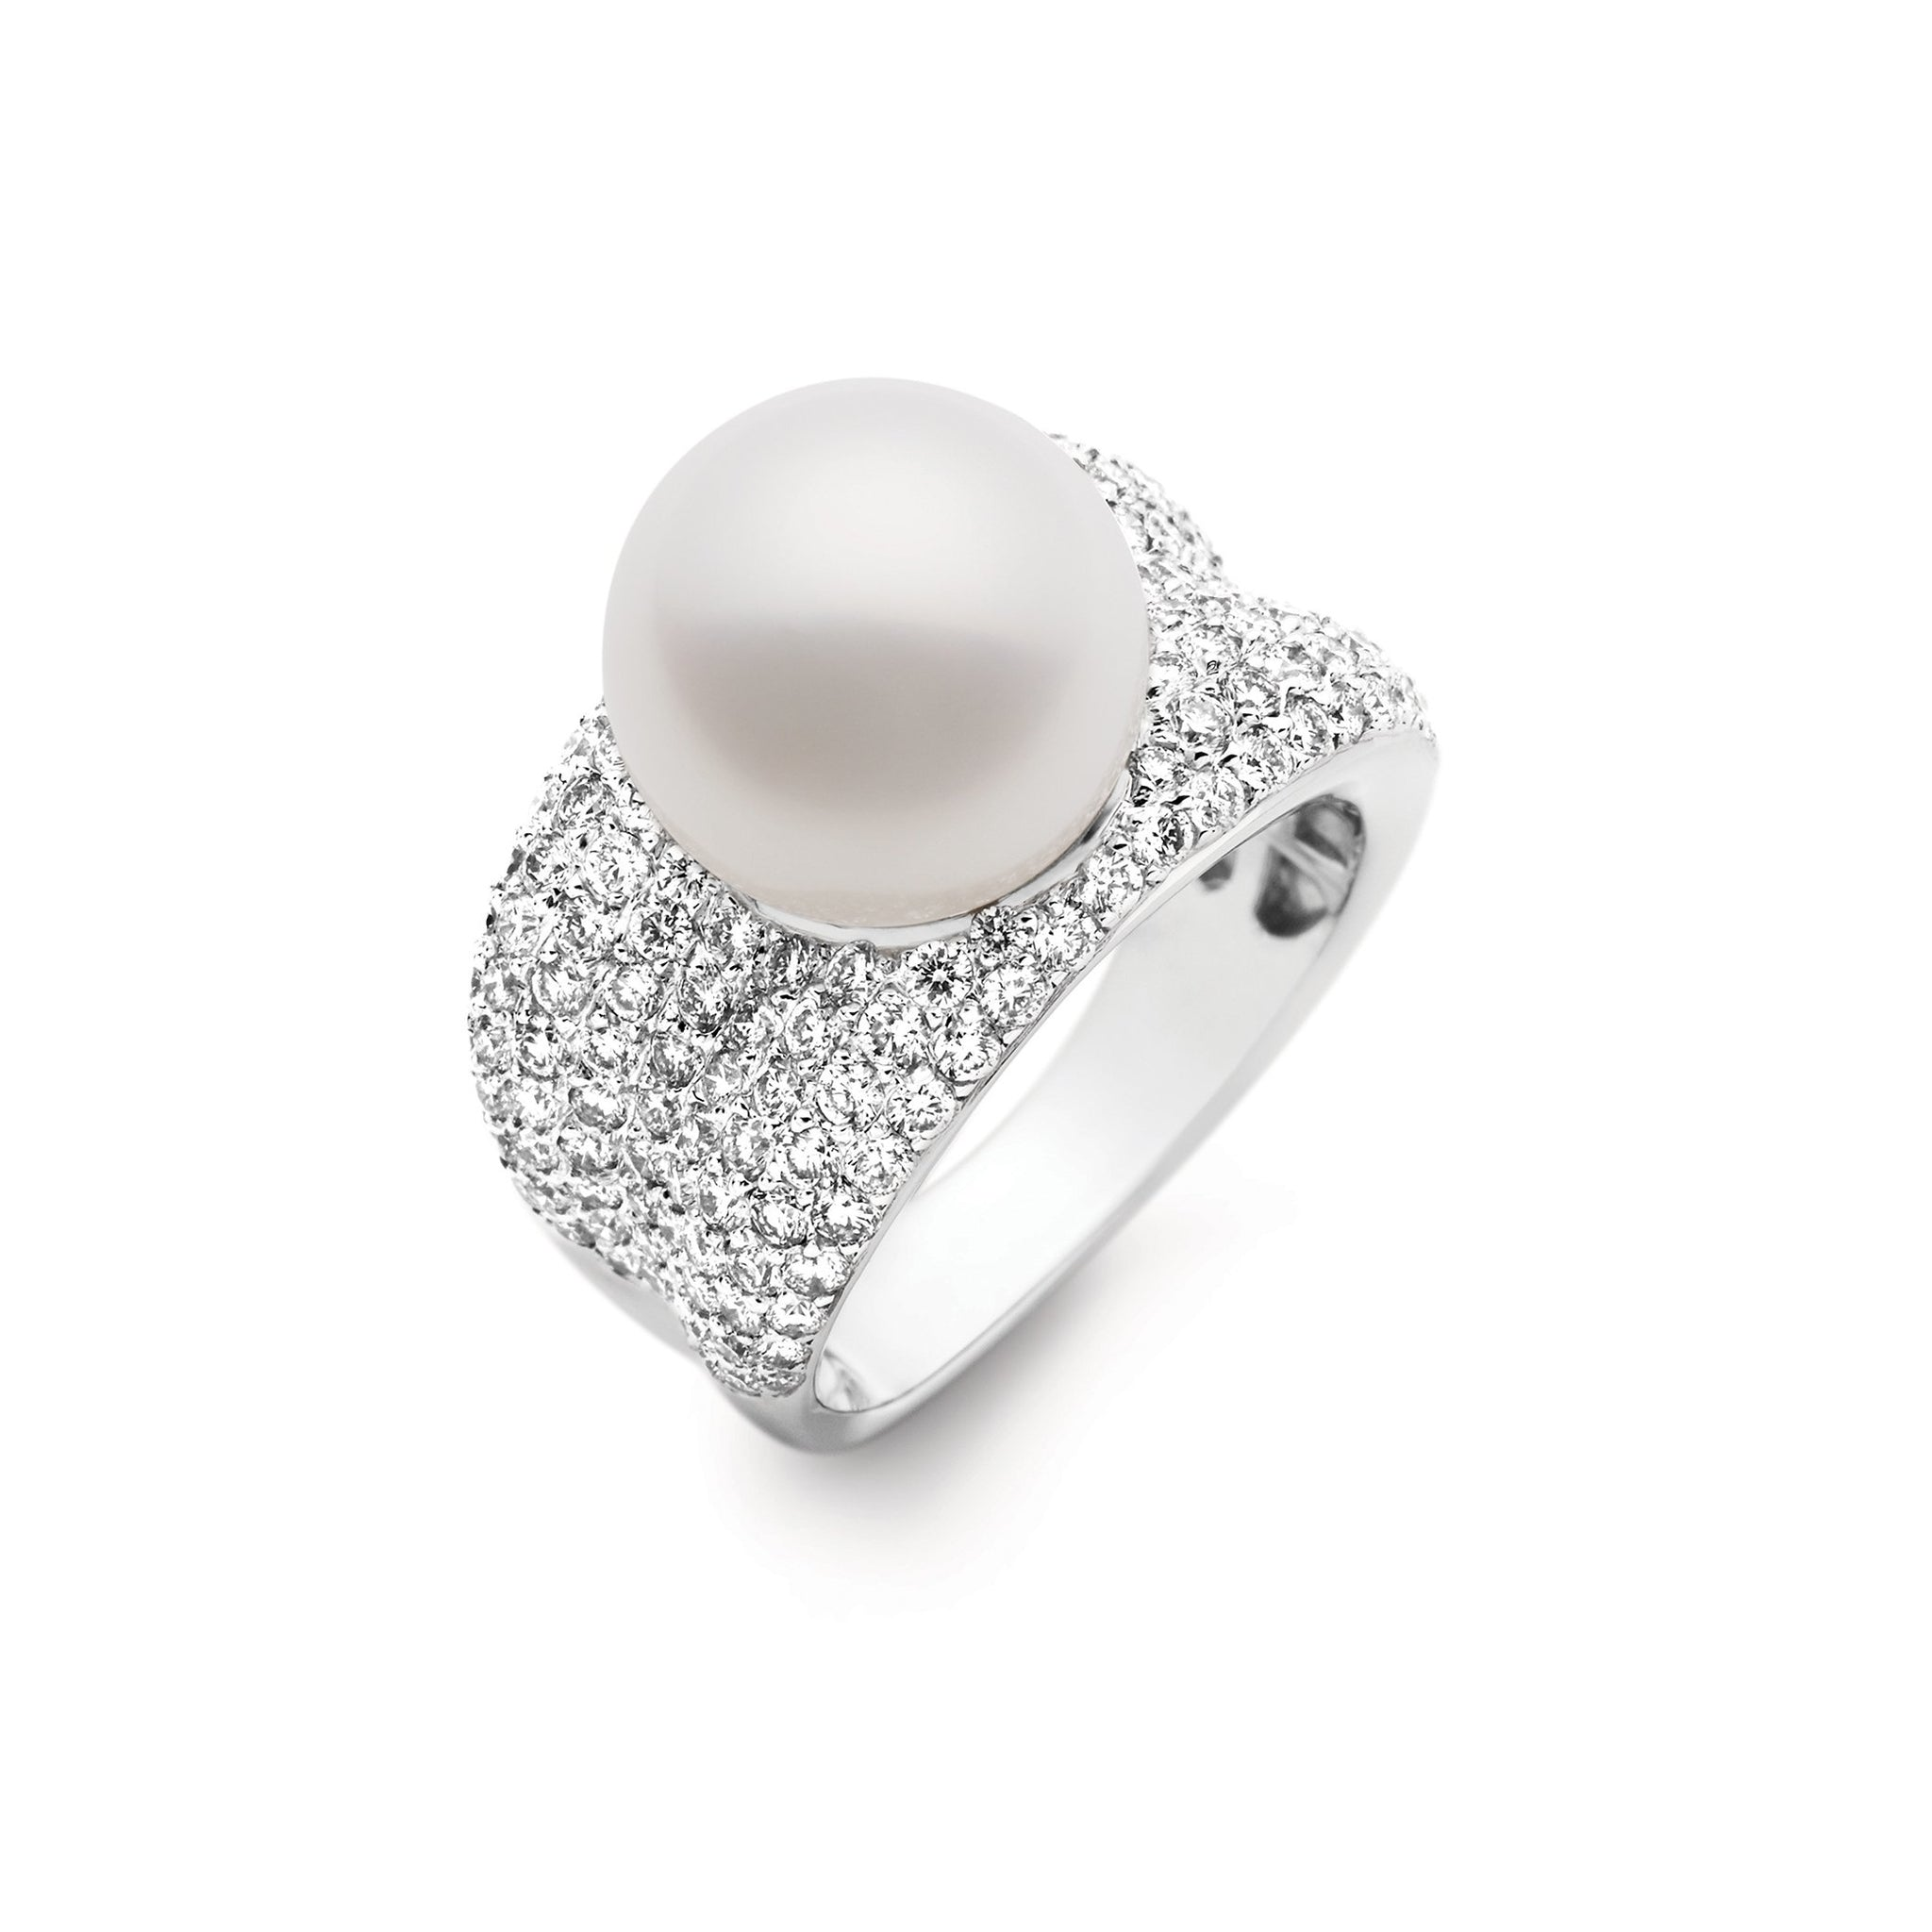 Kailis Jewellery - Adored Ring - White Gold